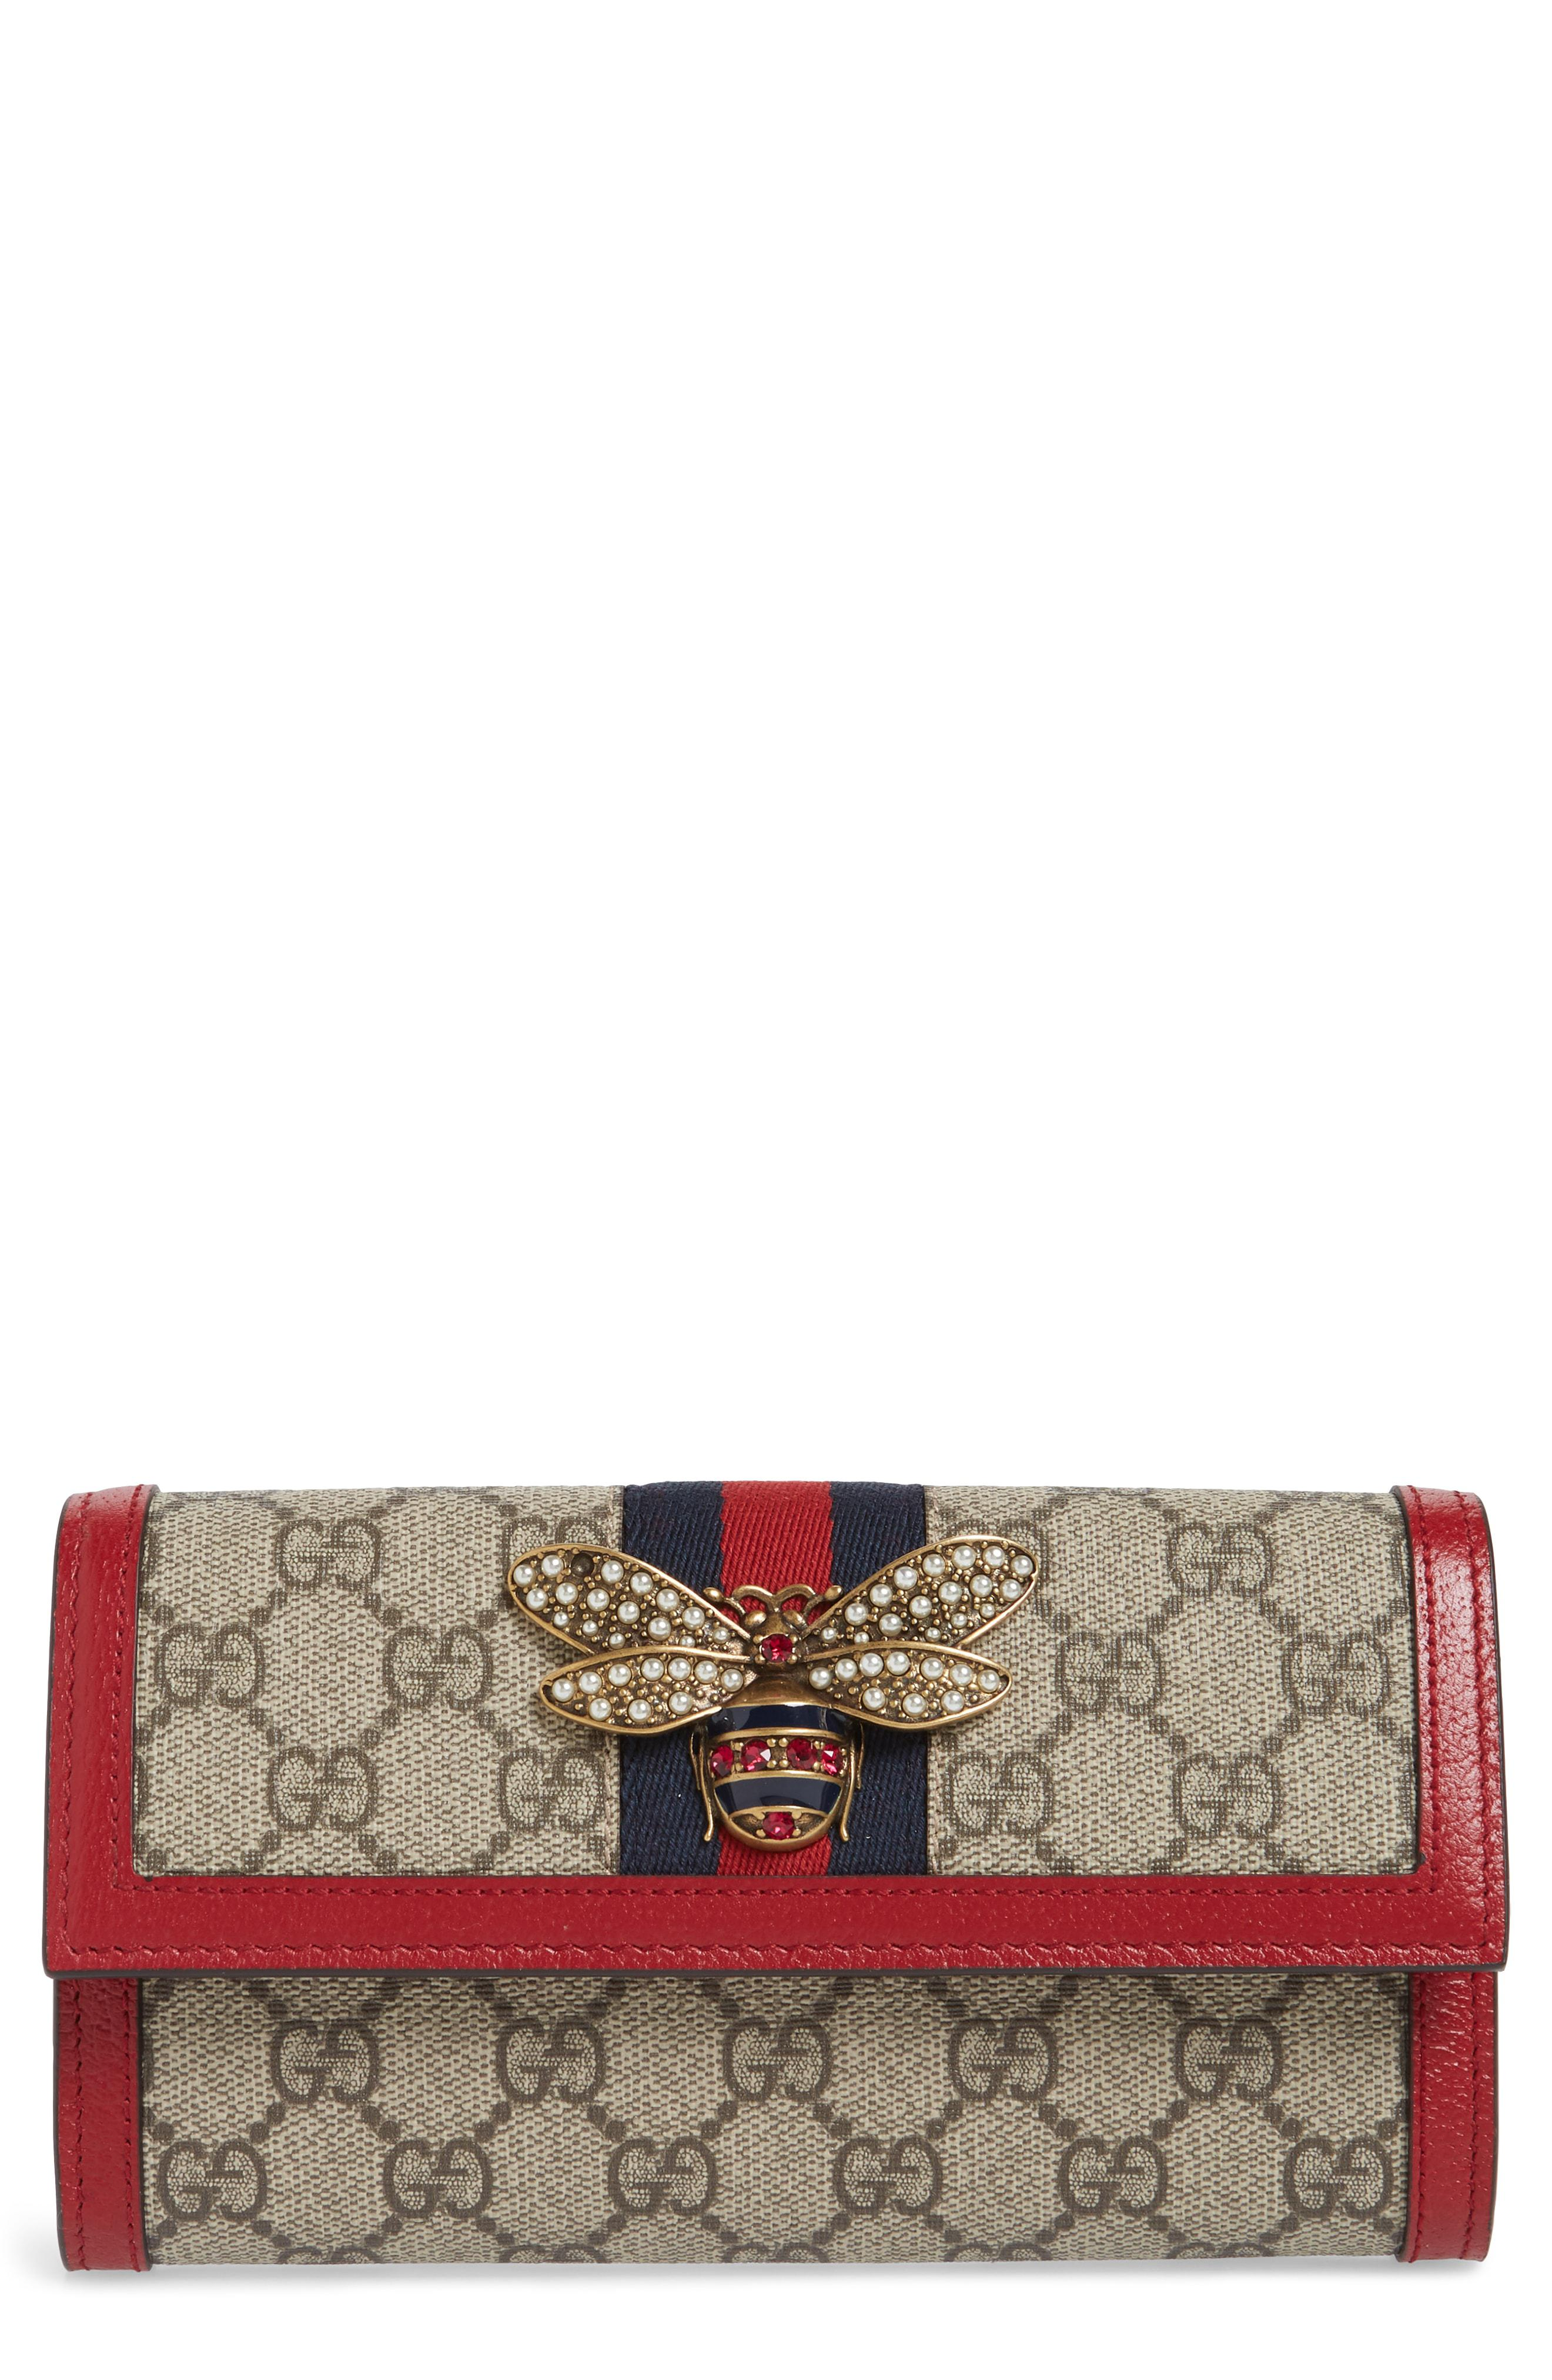 98897d23b1f392 Lyst - Gucci Queen Margaret Gg Supreme Canvas Flap Wallet in Natural